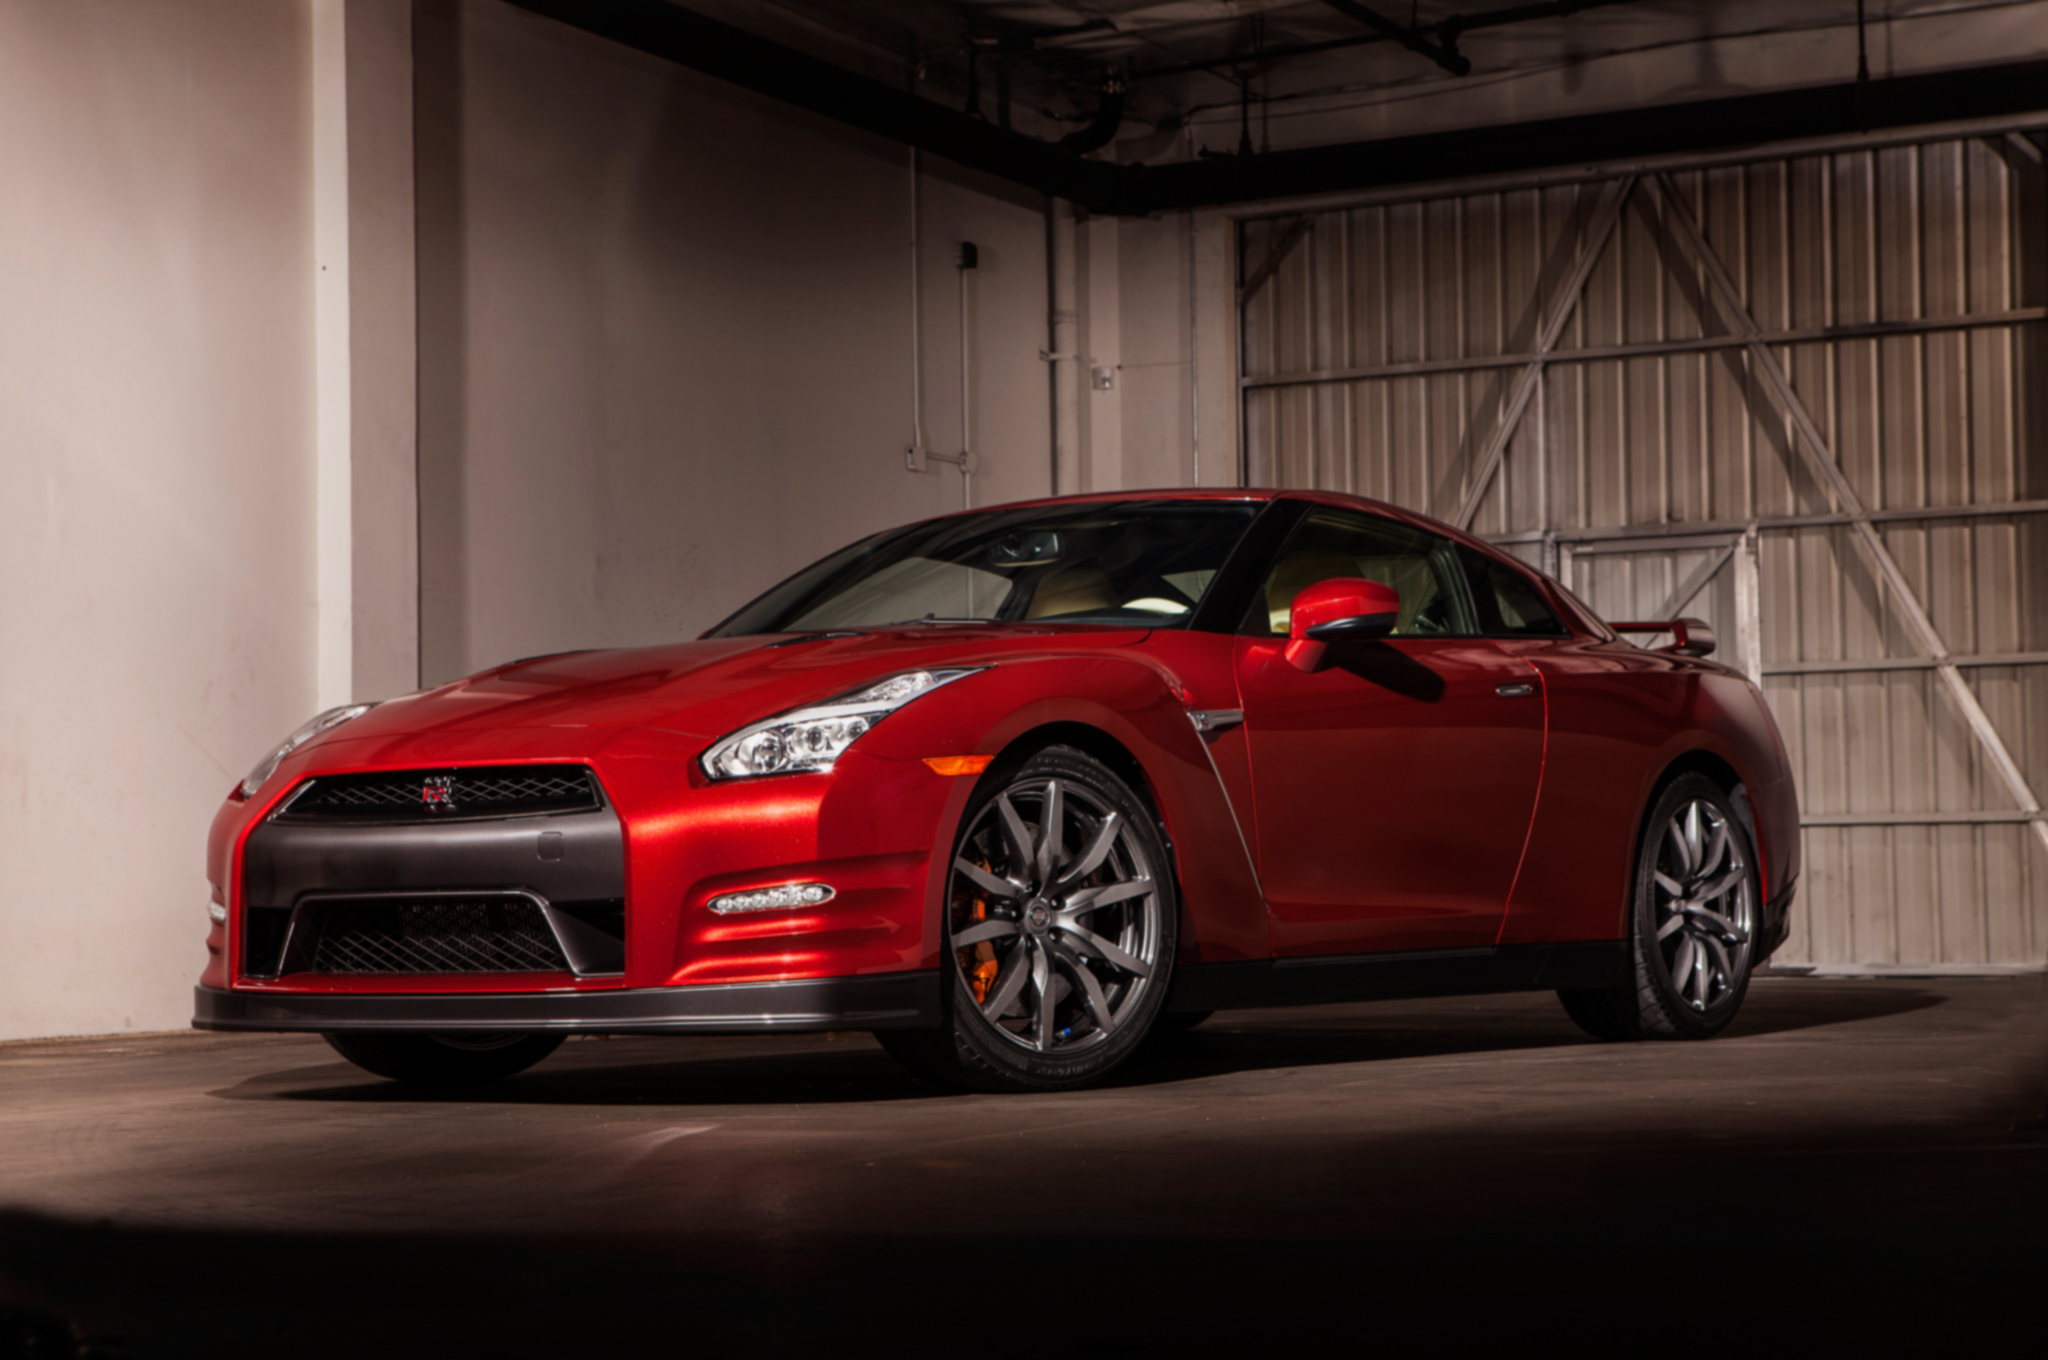 Wonderful 2015 Nissan GT R Nismo Starts At $151,585, On Sale In July